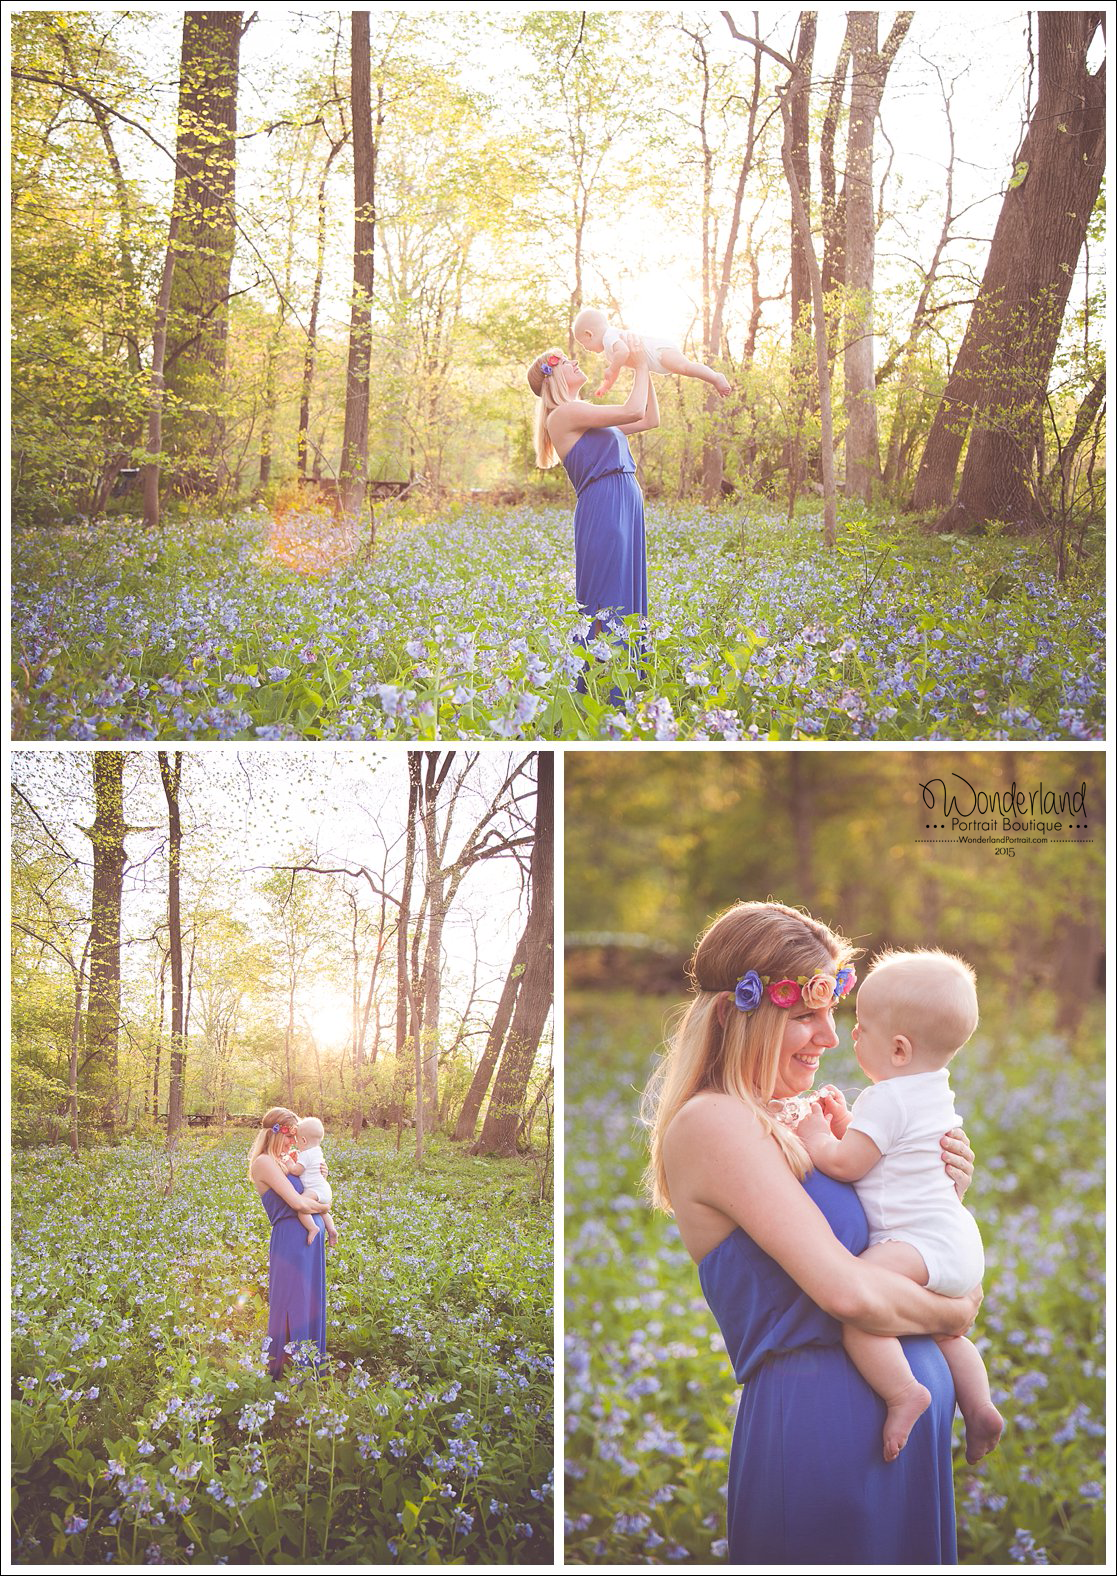 Mommy Me Breastfeeding Portraits Wonderland Portrait